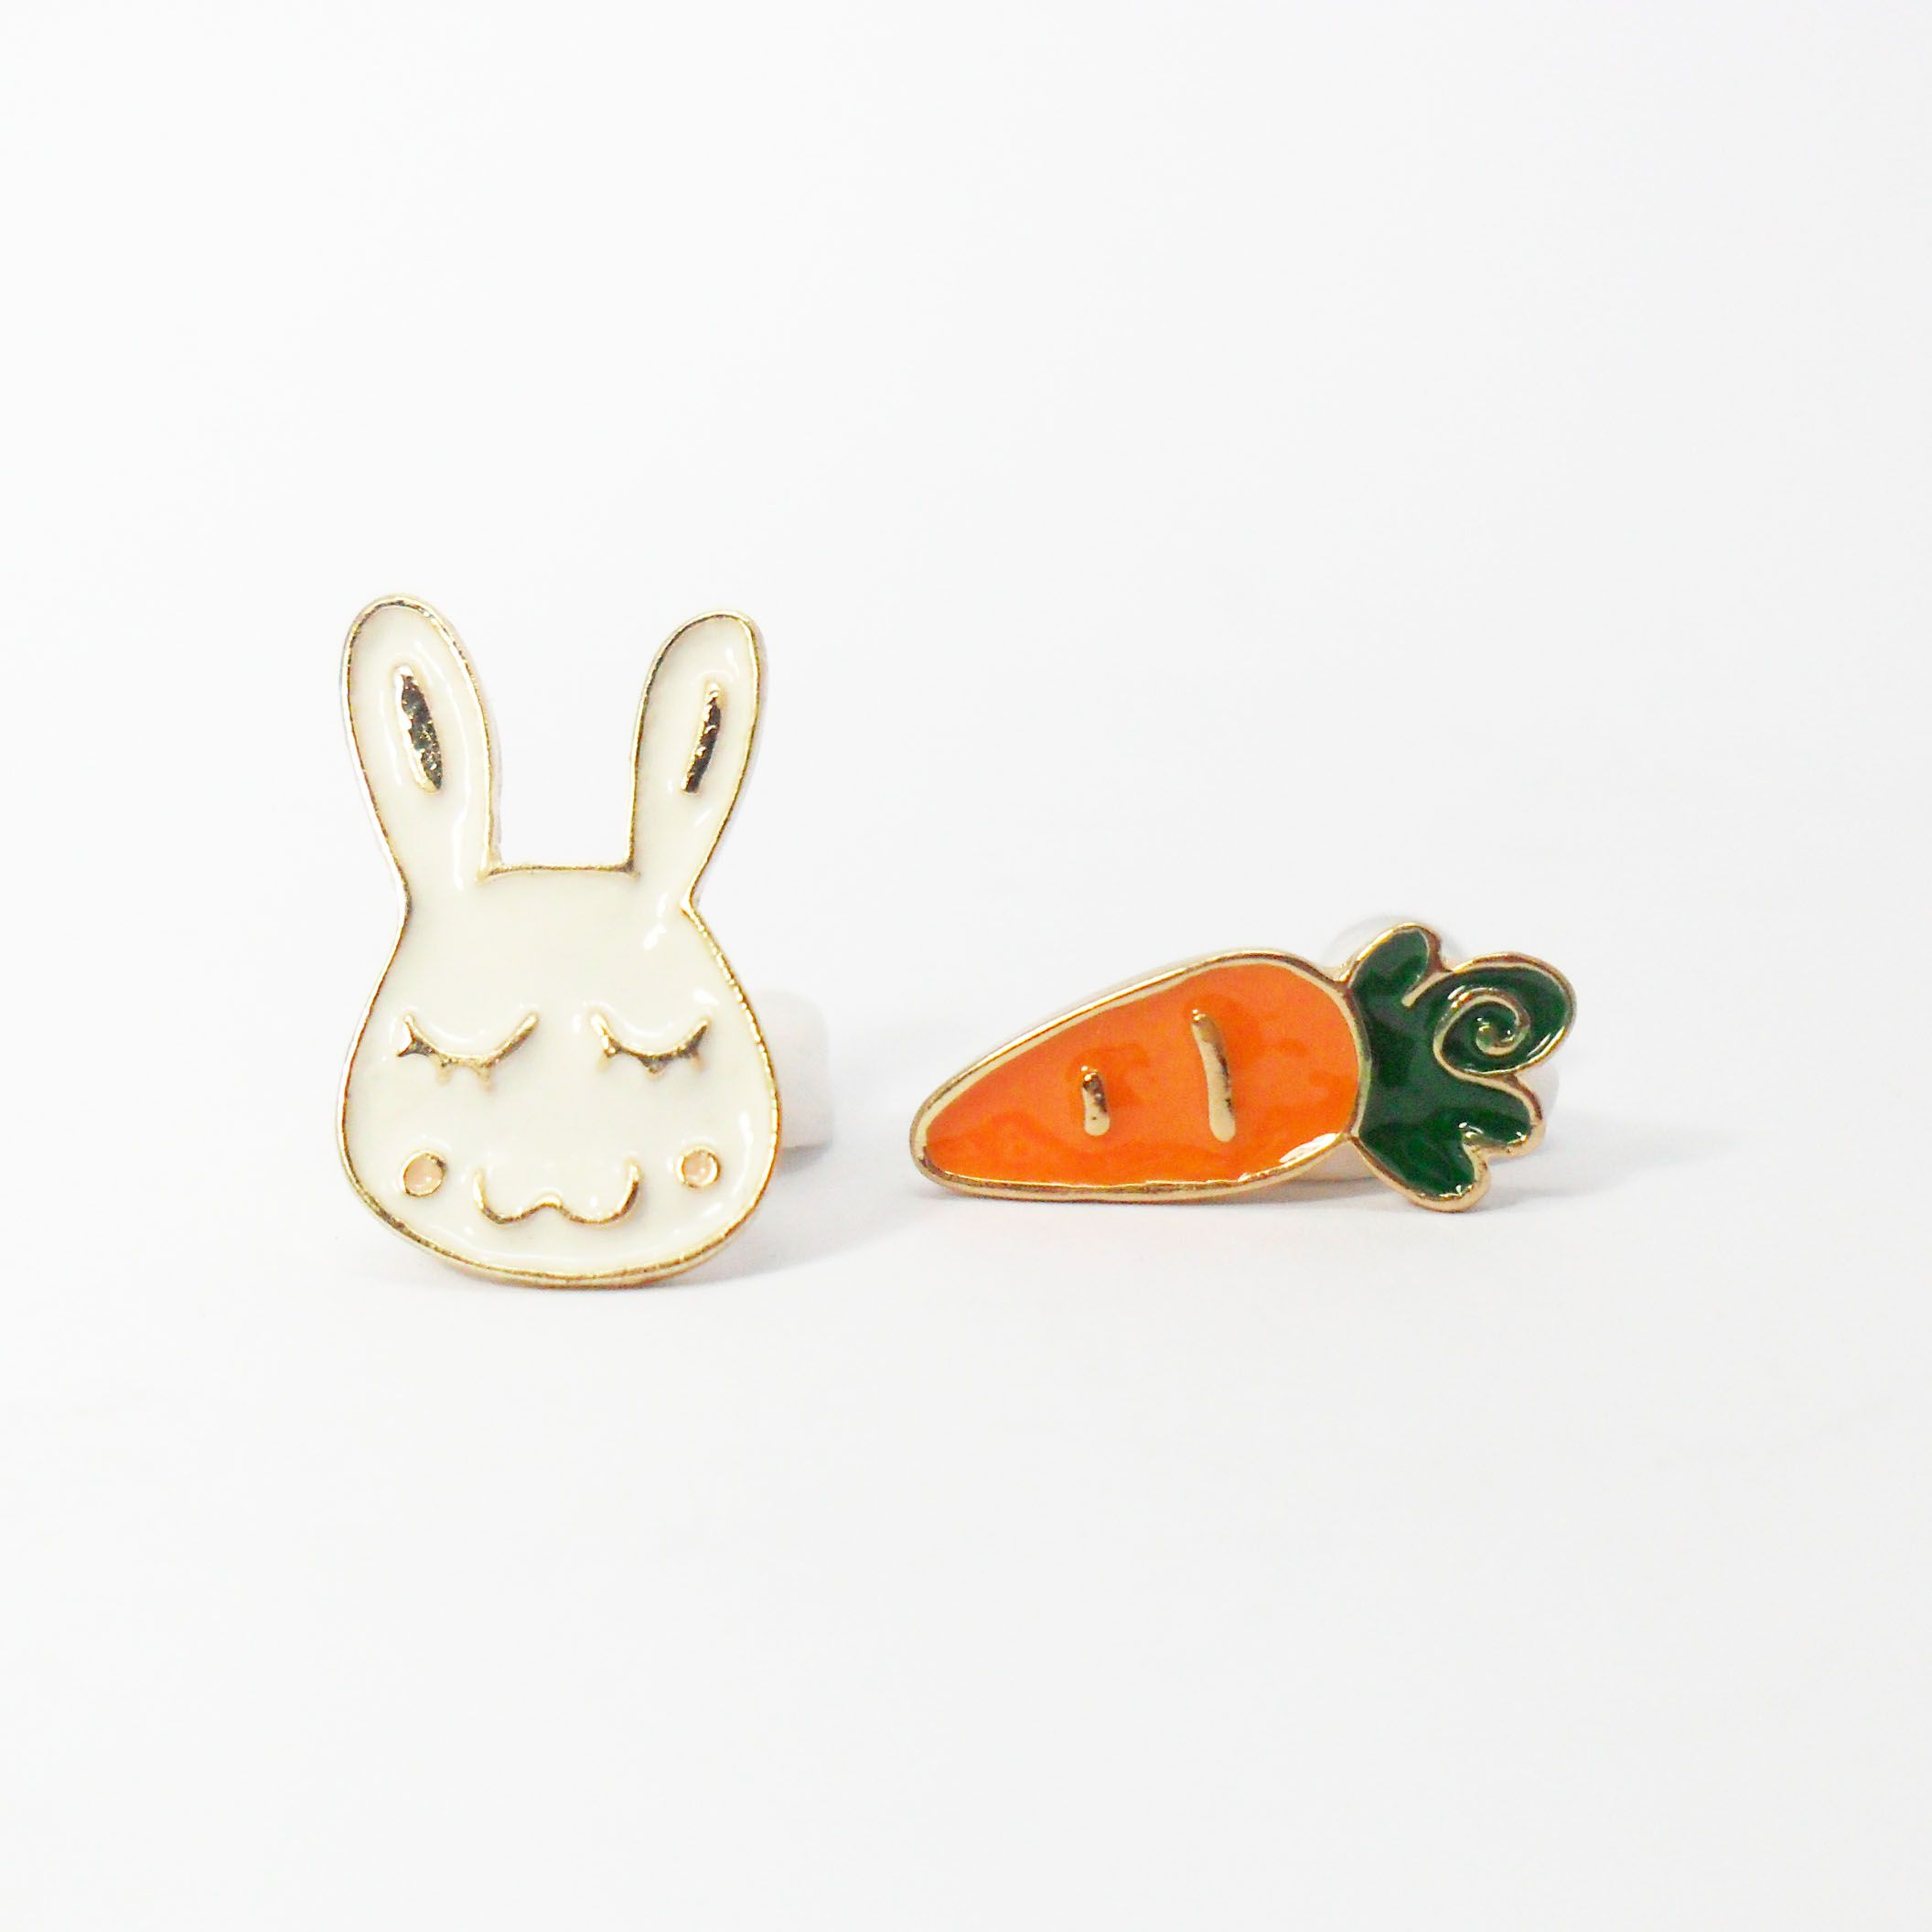 Mismatched Stud Earrings - Bunny & Carrot (Php 100) Made ...